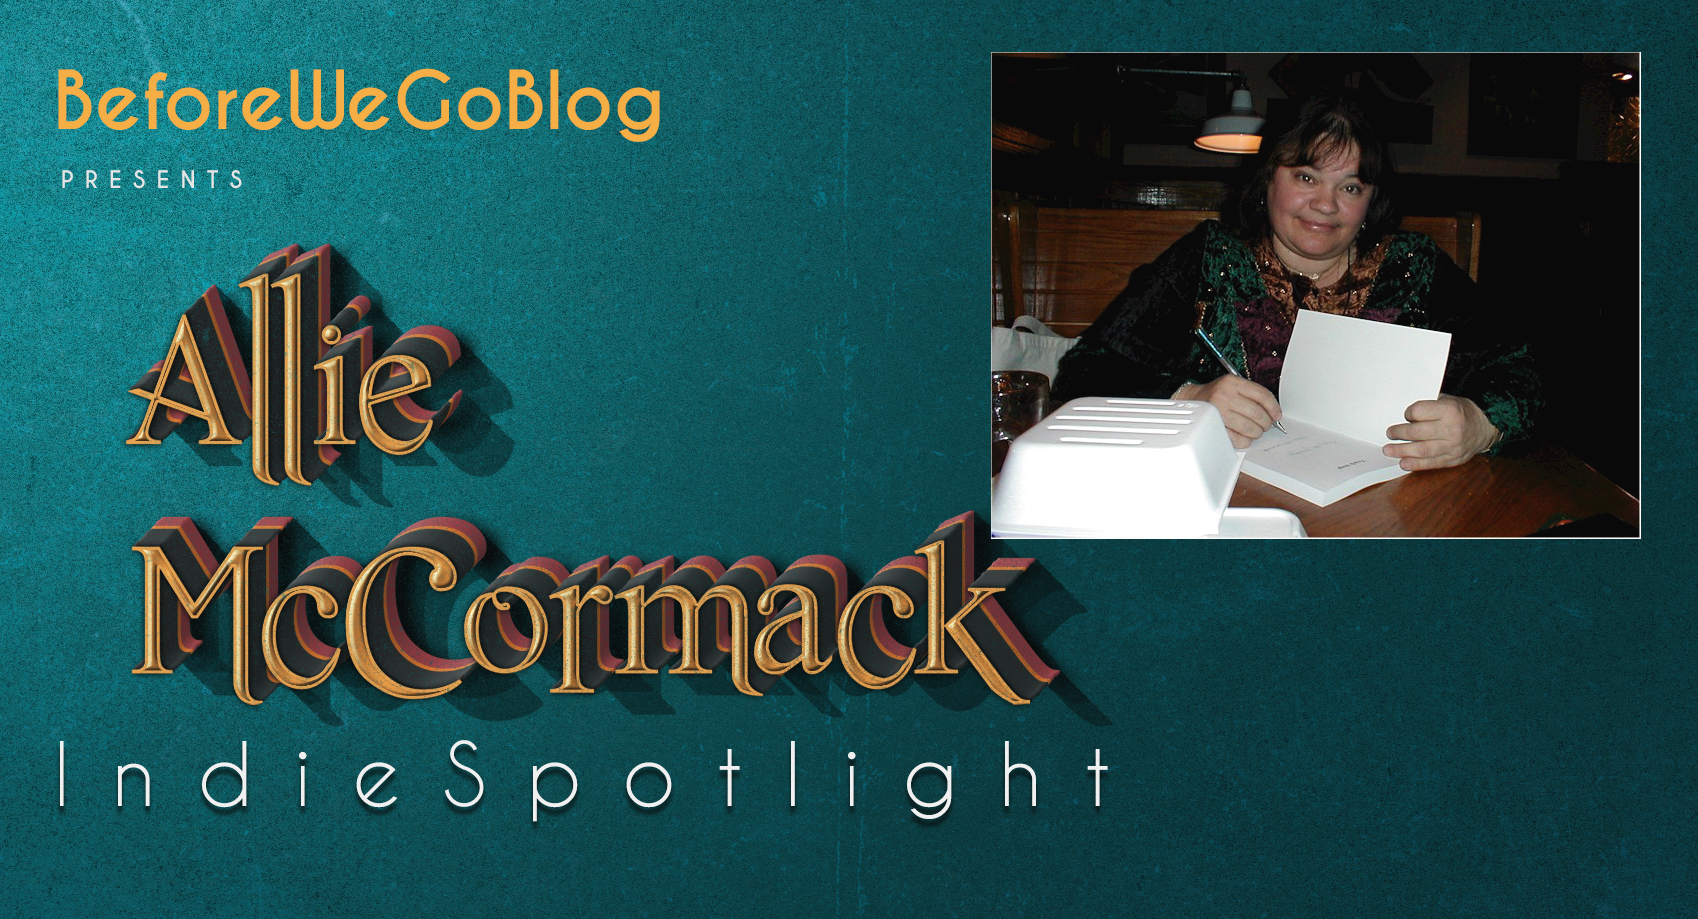 Indie Spotlight – Allie McCormack